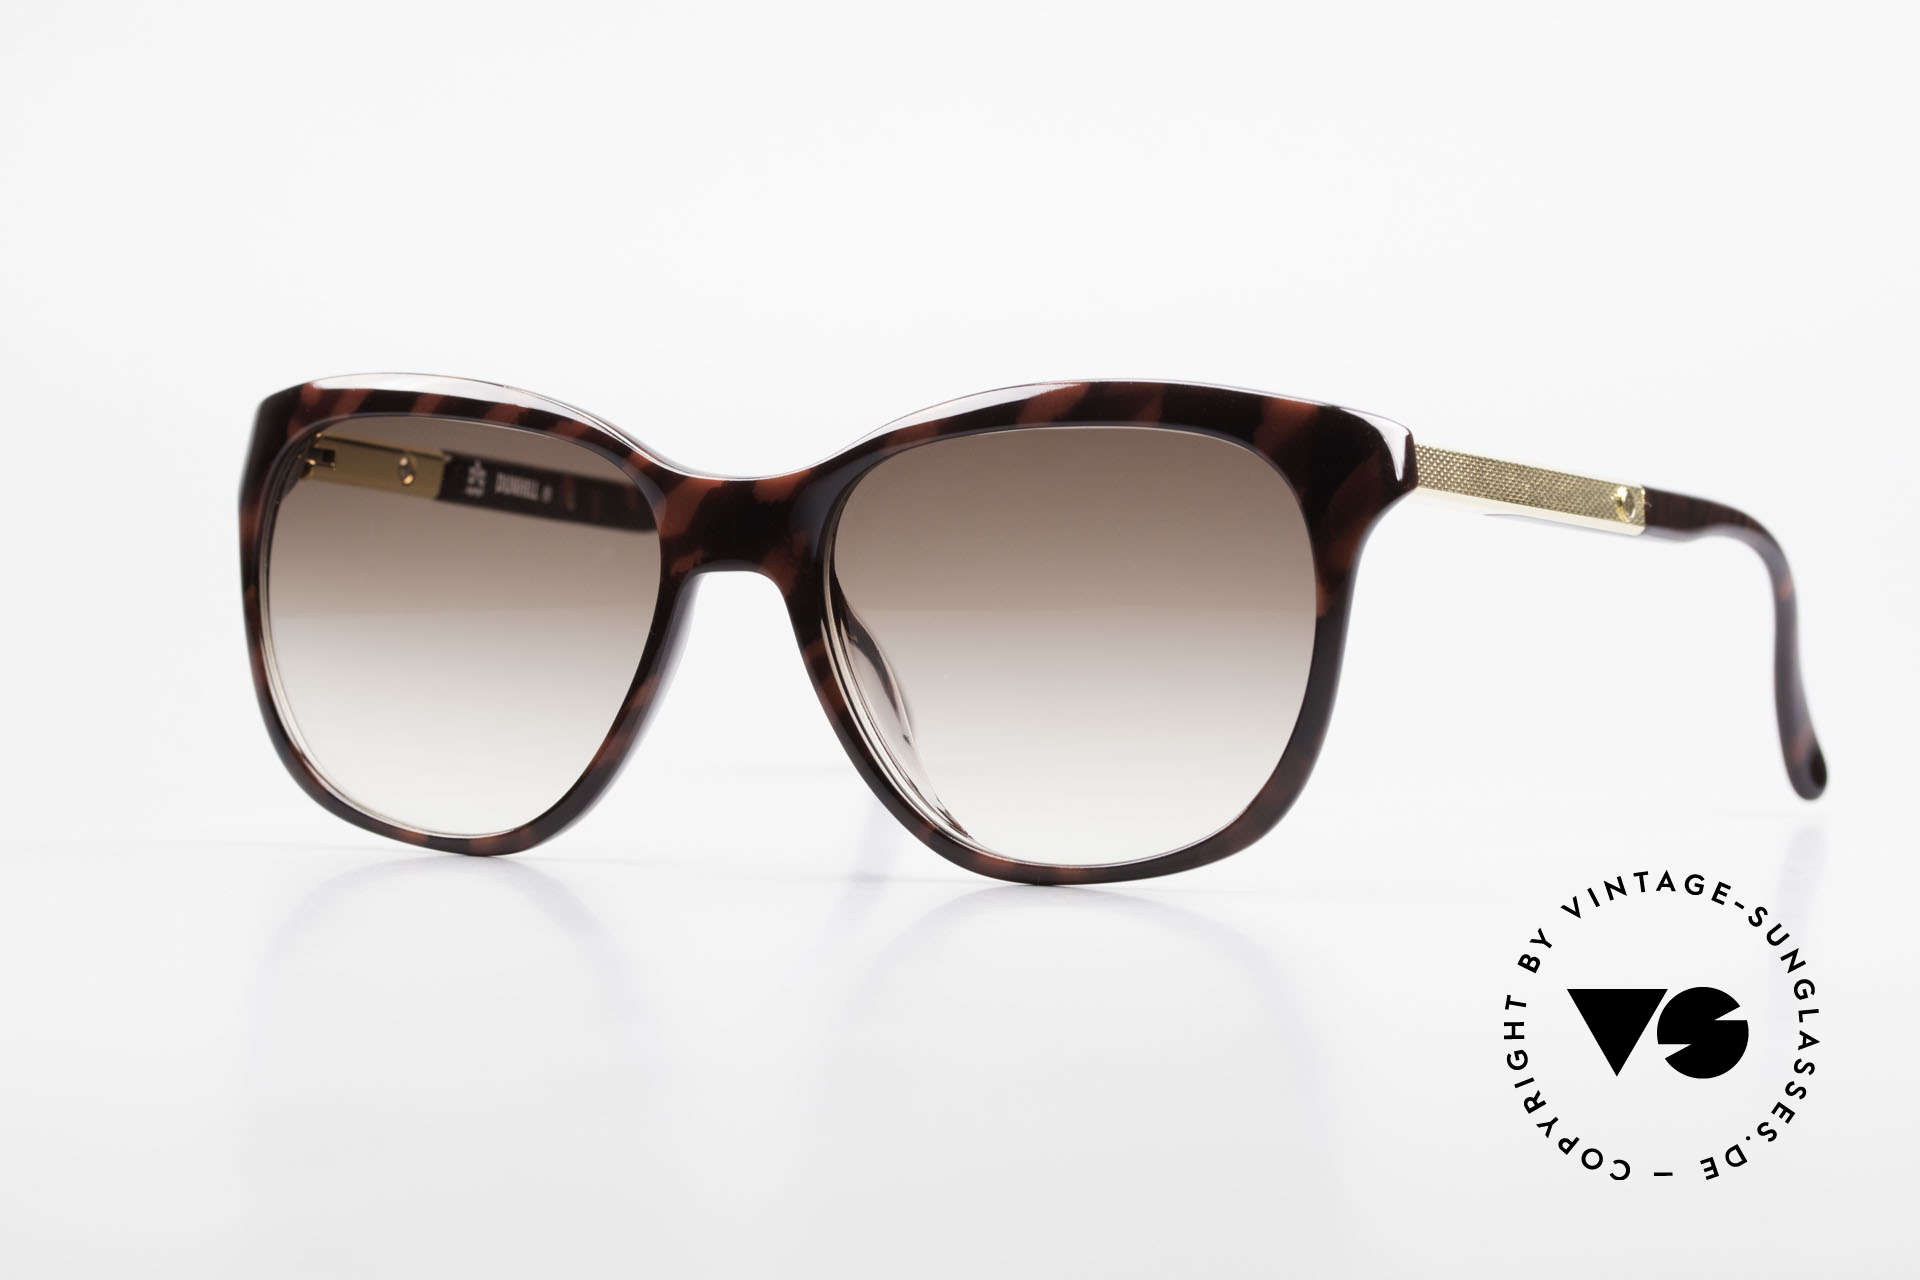 Dunhill 6006 Old 80's Sunglasses Gentlemen, timeless, stylish design from 1982, gold-plated, Made for Men